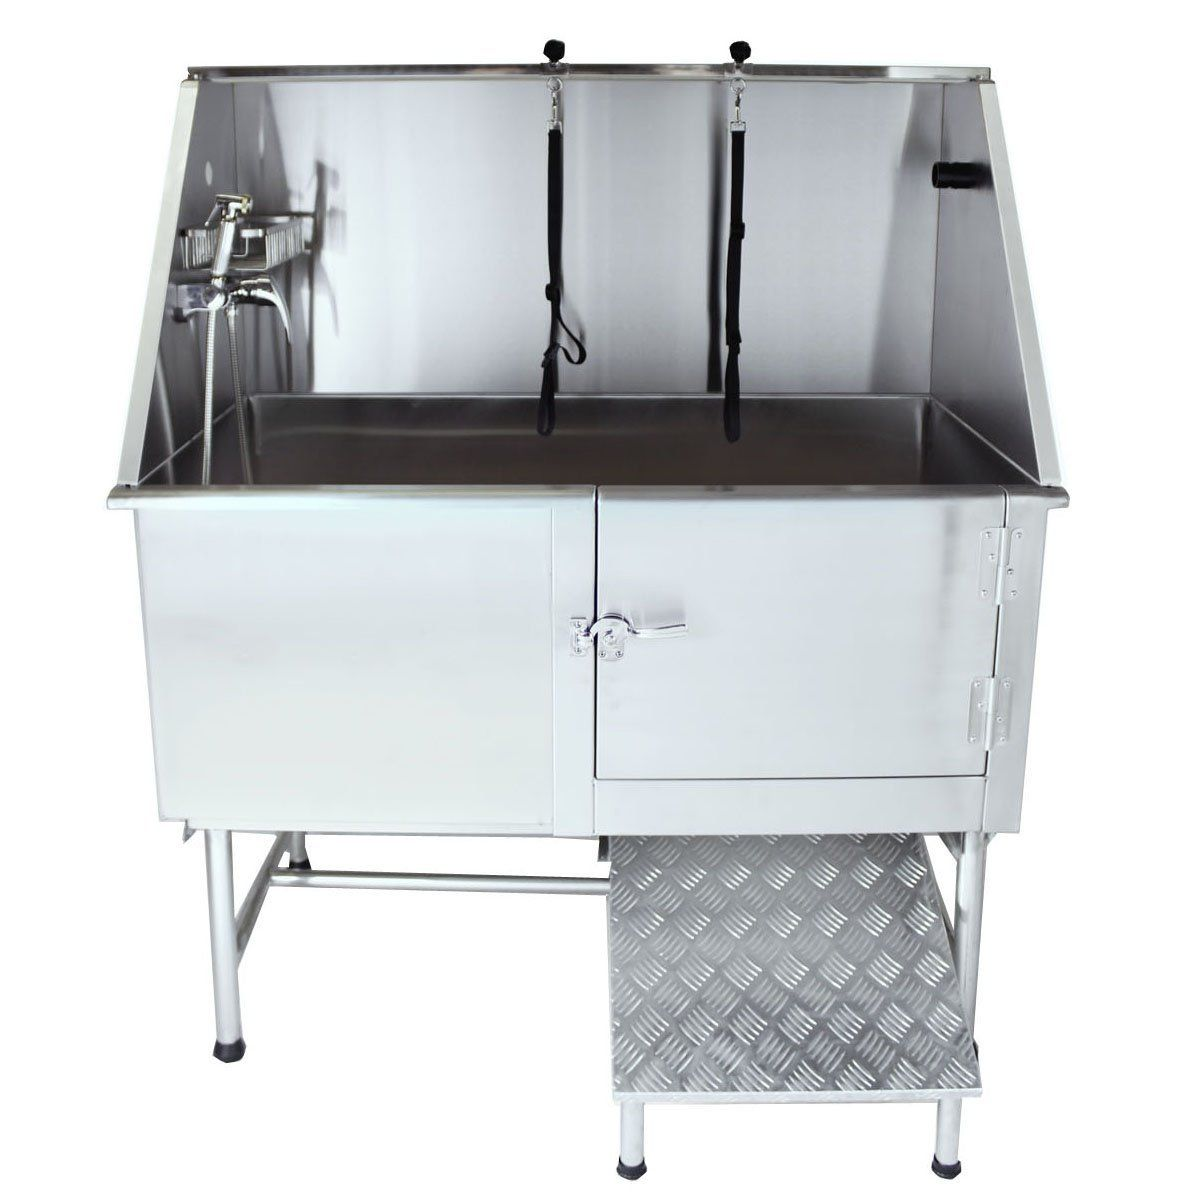 50 Flying Pig Grooming Professional Stainless Steel Pet Dog Grooming Bath Tub With Faucet Walk In Ramp And Accessorie Dog Bath Tub Dog Grooming Tubs Dog Bath